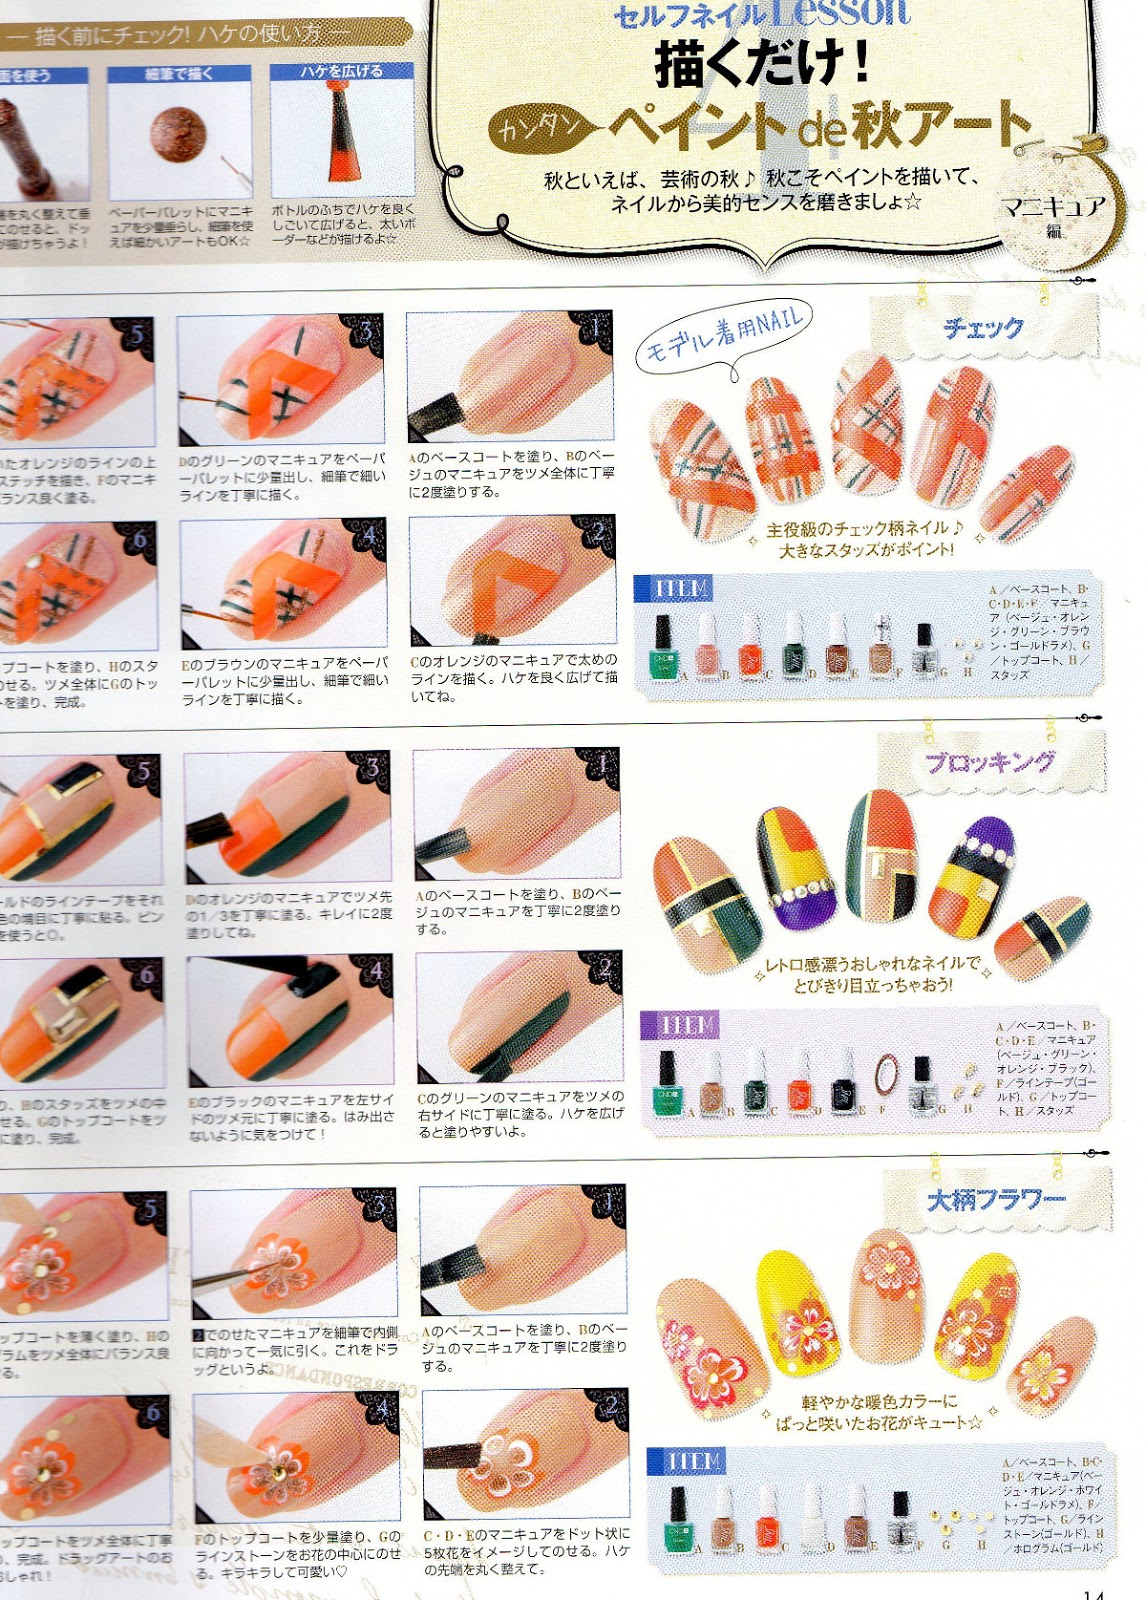 How to Use Nail Brushes